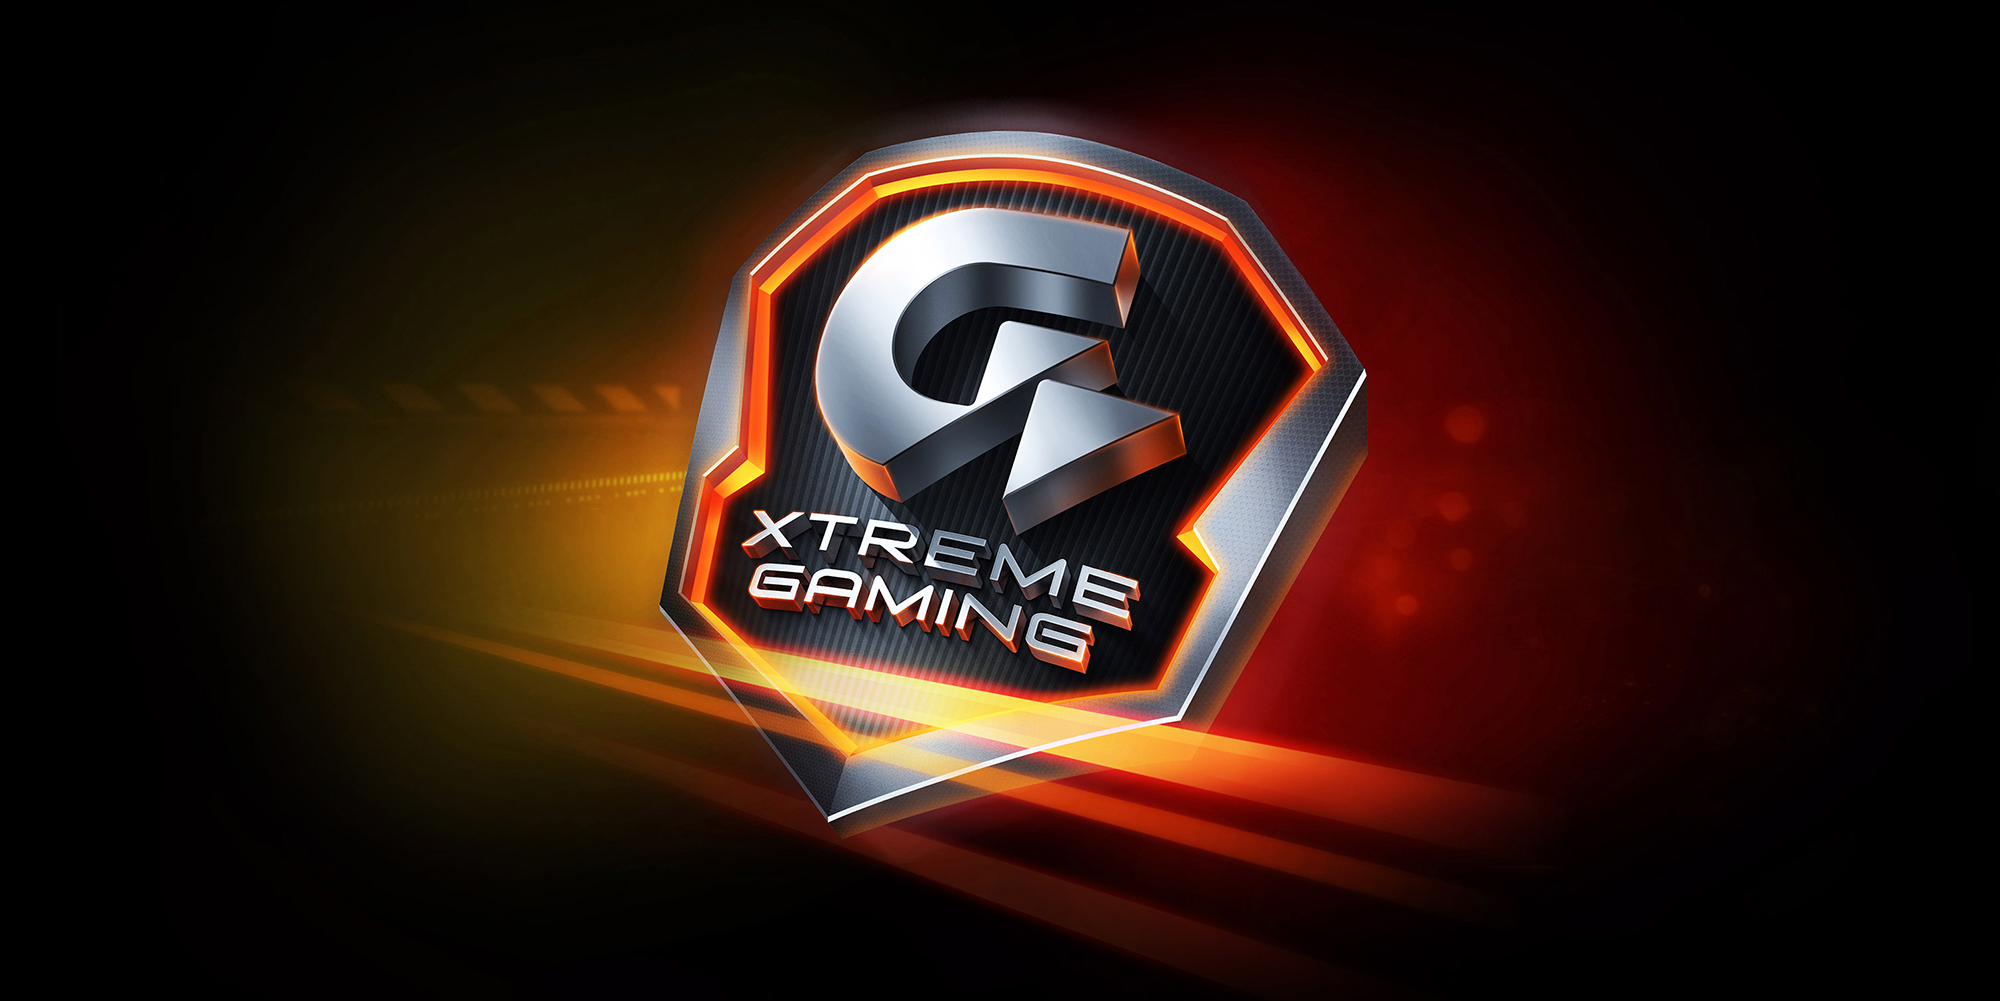 Gigabyte High Quality Background on Wallpapers Vista